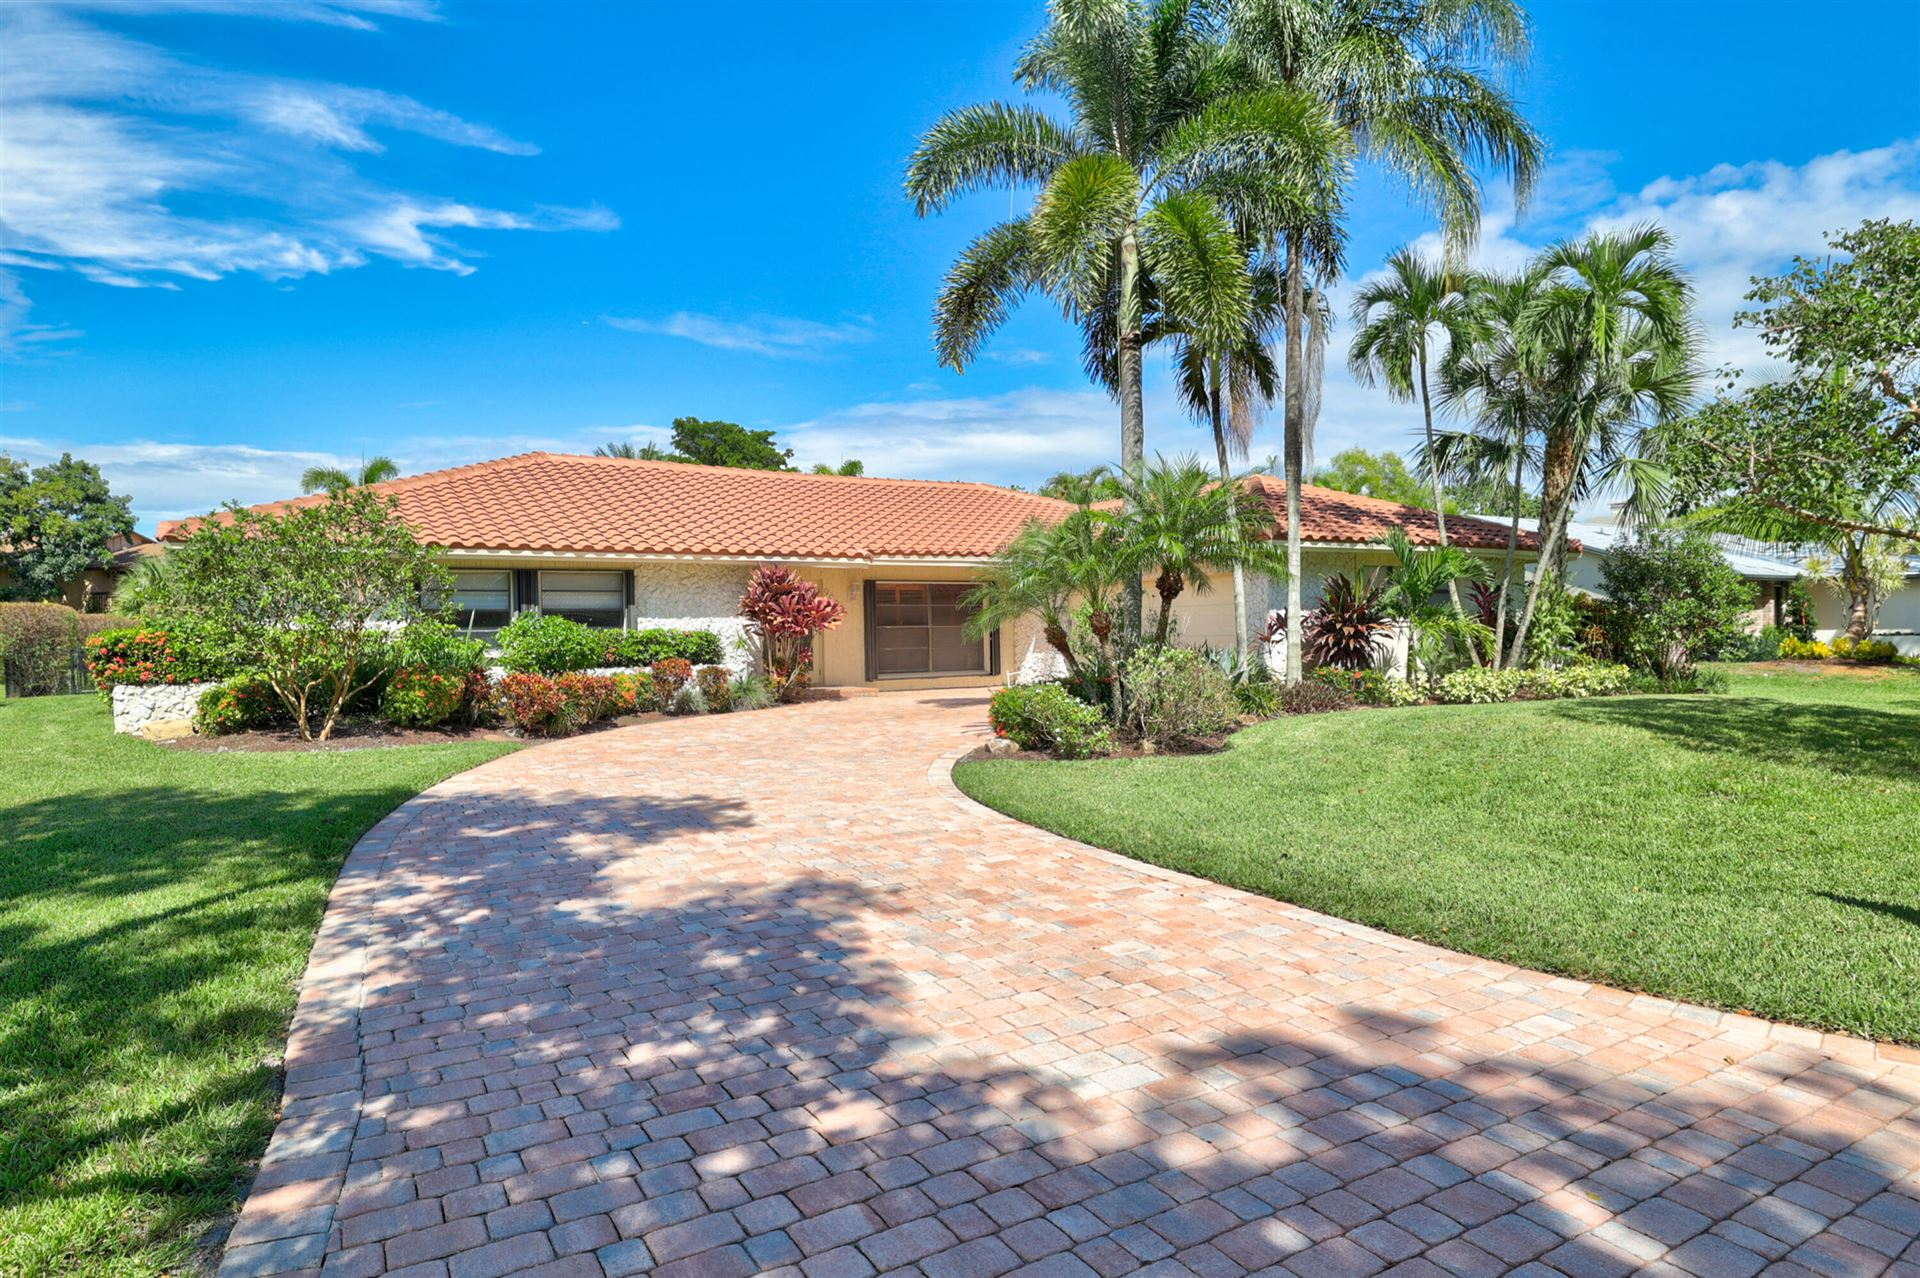 Photo of 9999 NW 20th Street, Coral Springs, FL 33071 (MLS # RX-10751994)